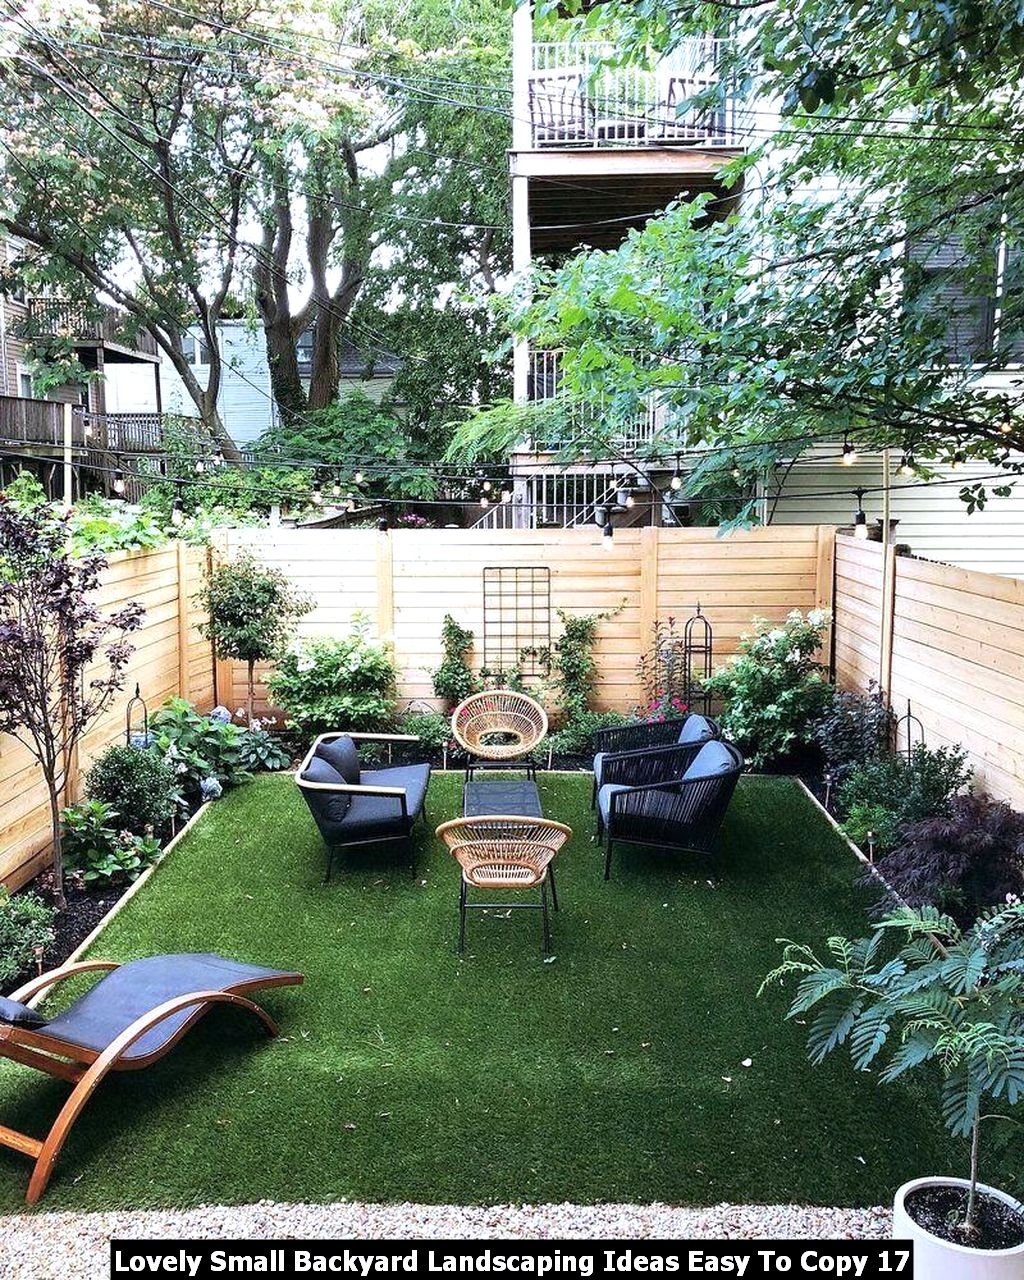 Lovely Small Backyard Landscaping Ideas Easy To Copy 17